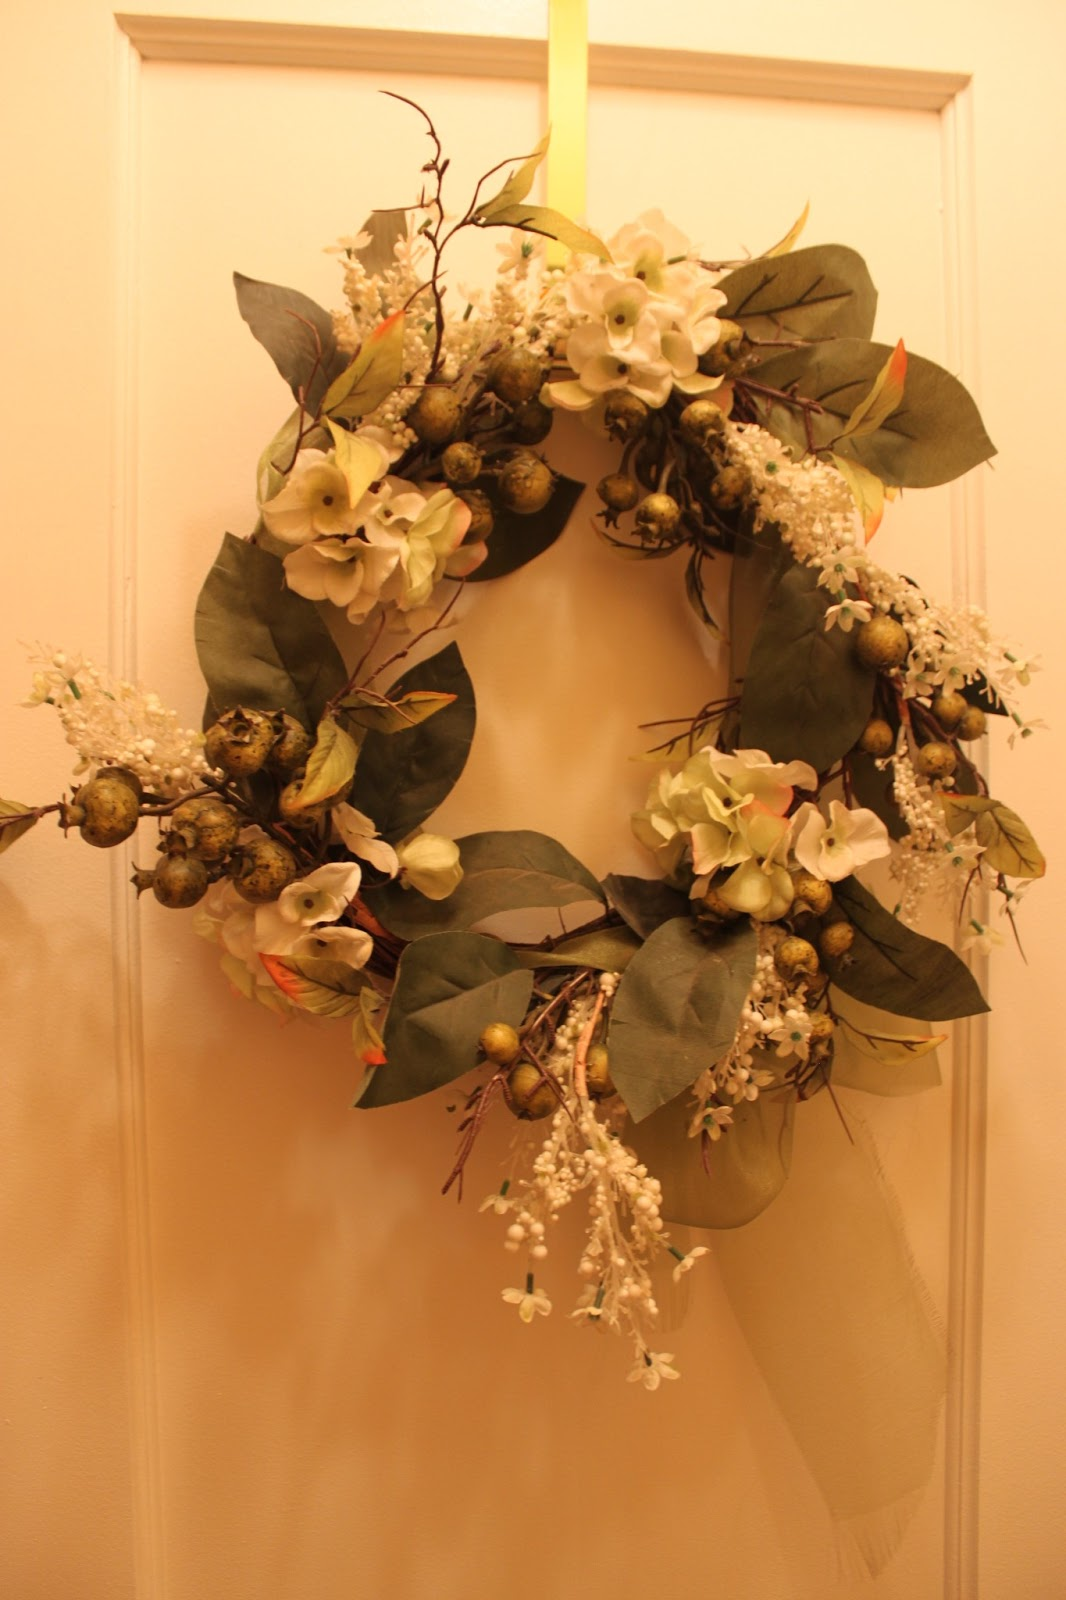 To Decorate The Entryway I Placed One Of My Coordinating Leftover Wreaths On Closet Door And Faced It Opposite Wall With A Mirror Found At Home